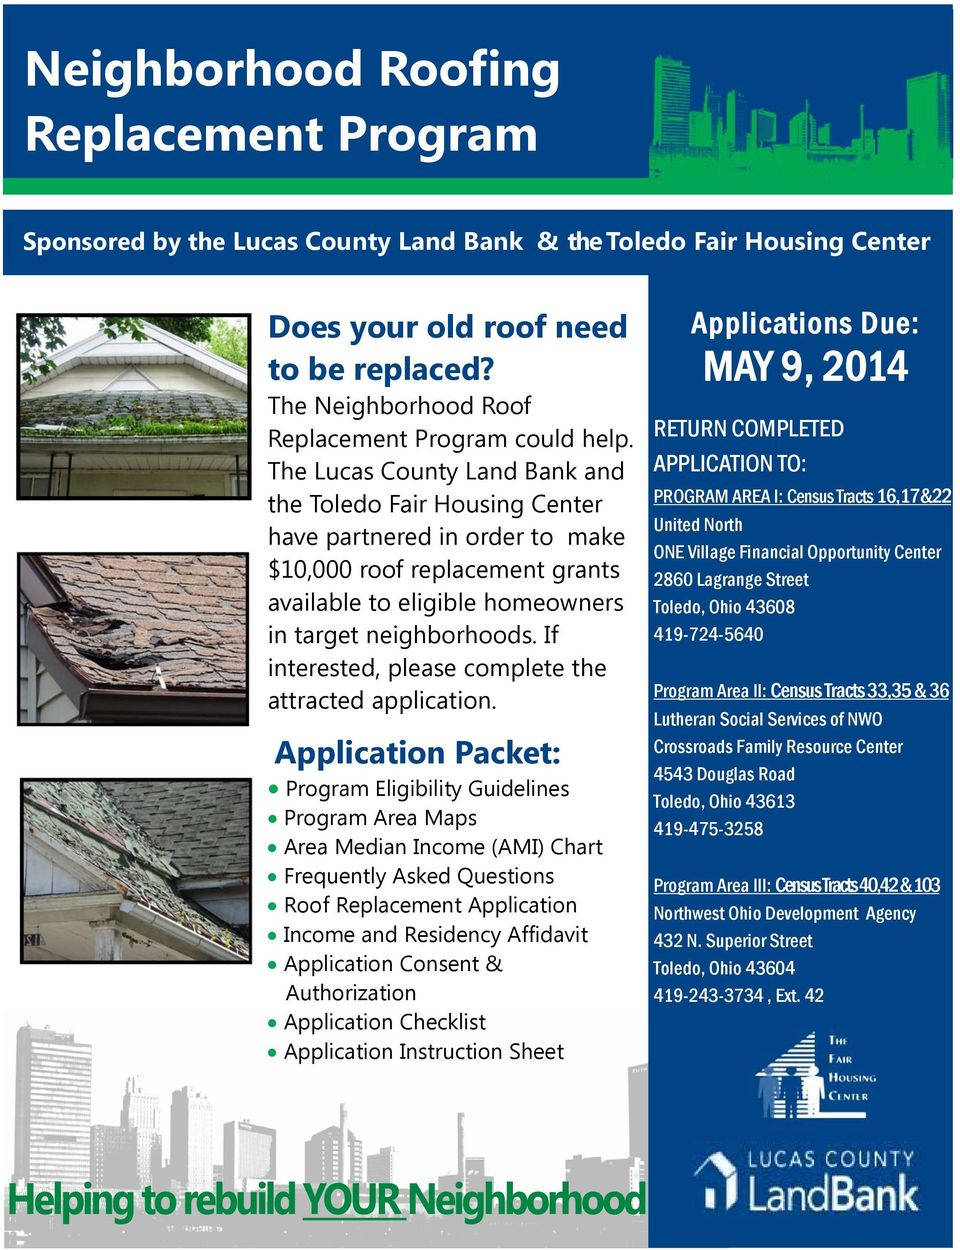 The Lucas County Land Bank and the Toledo Fair Housing Center have partnered in order to make $10,000 roof replacement grants available to eligible homeowners in target neighborhoods.